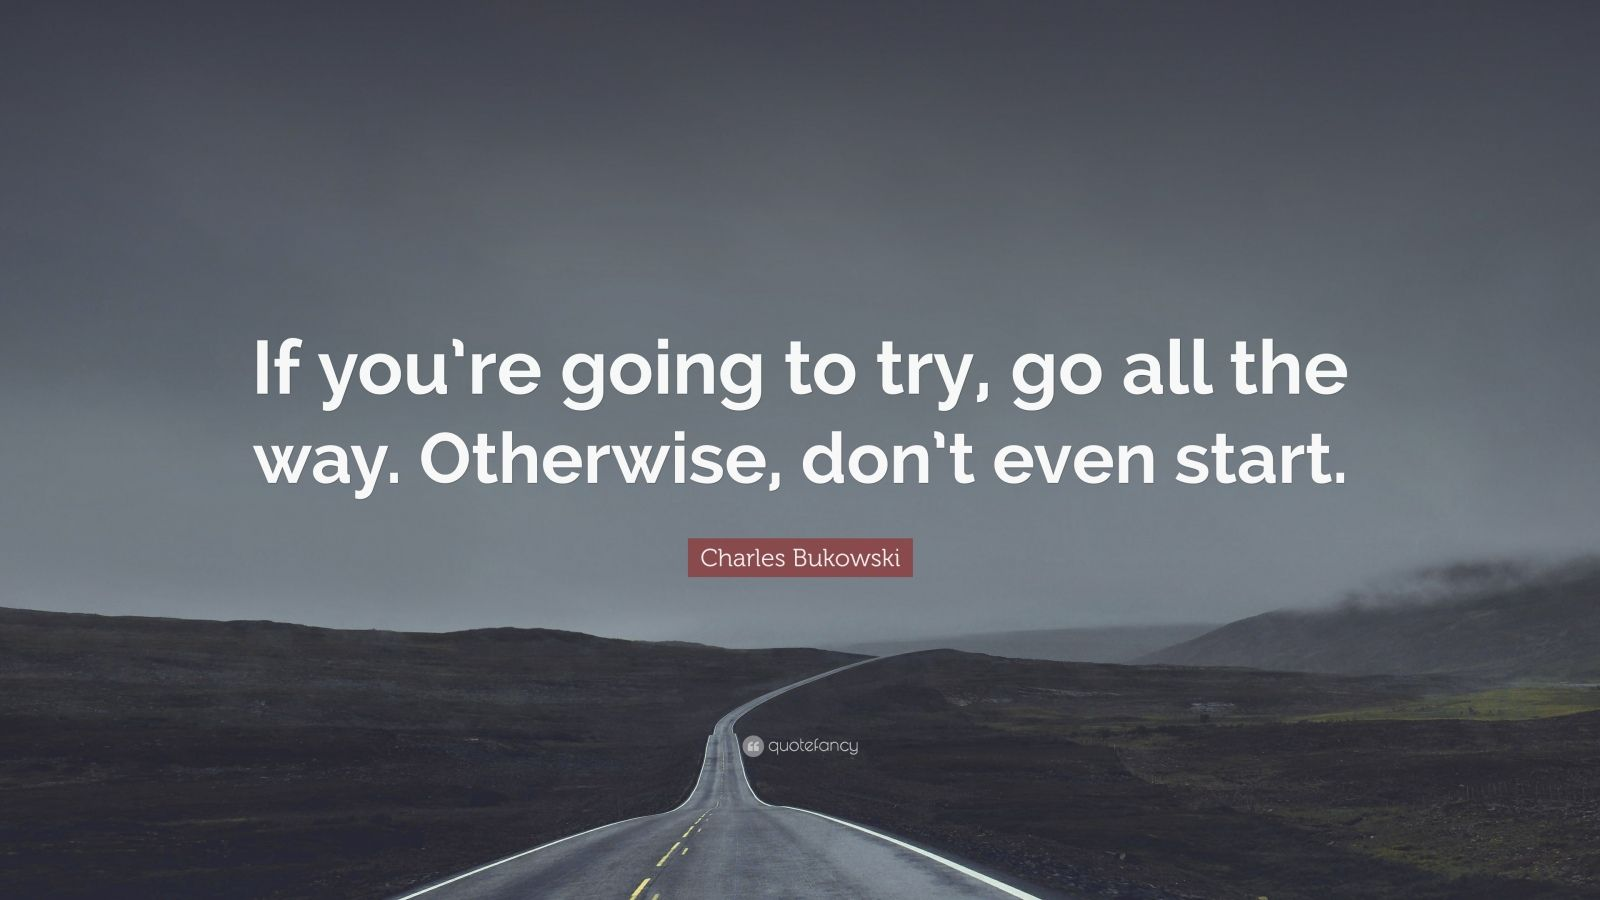 """Charles Bukowski Quote: """"If you're going to try, go all the way. Otherwise, don't even start."""""""